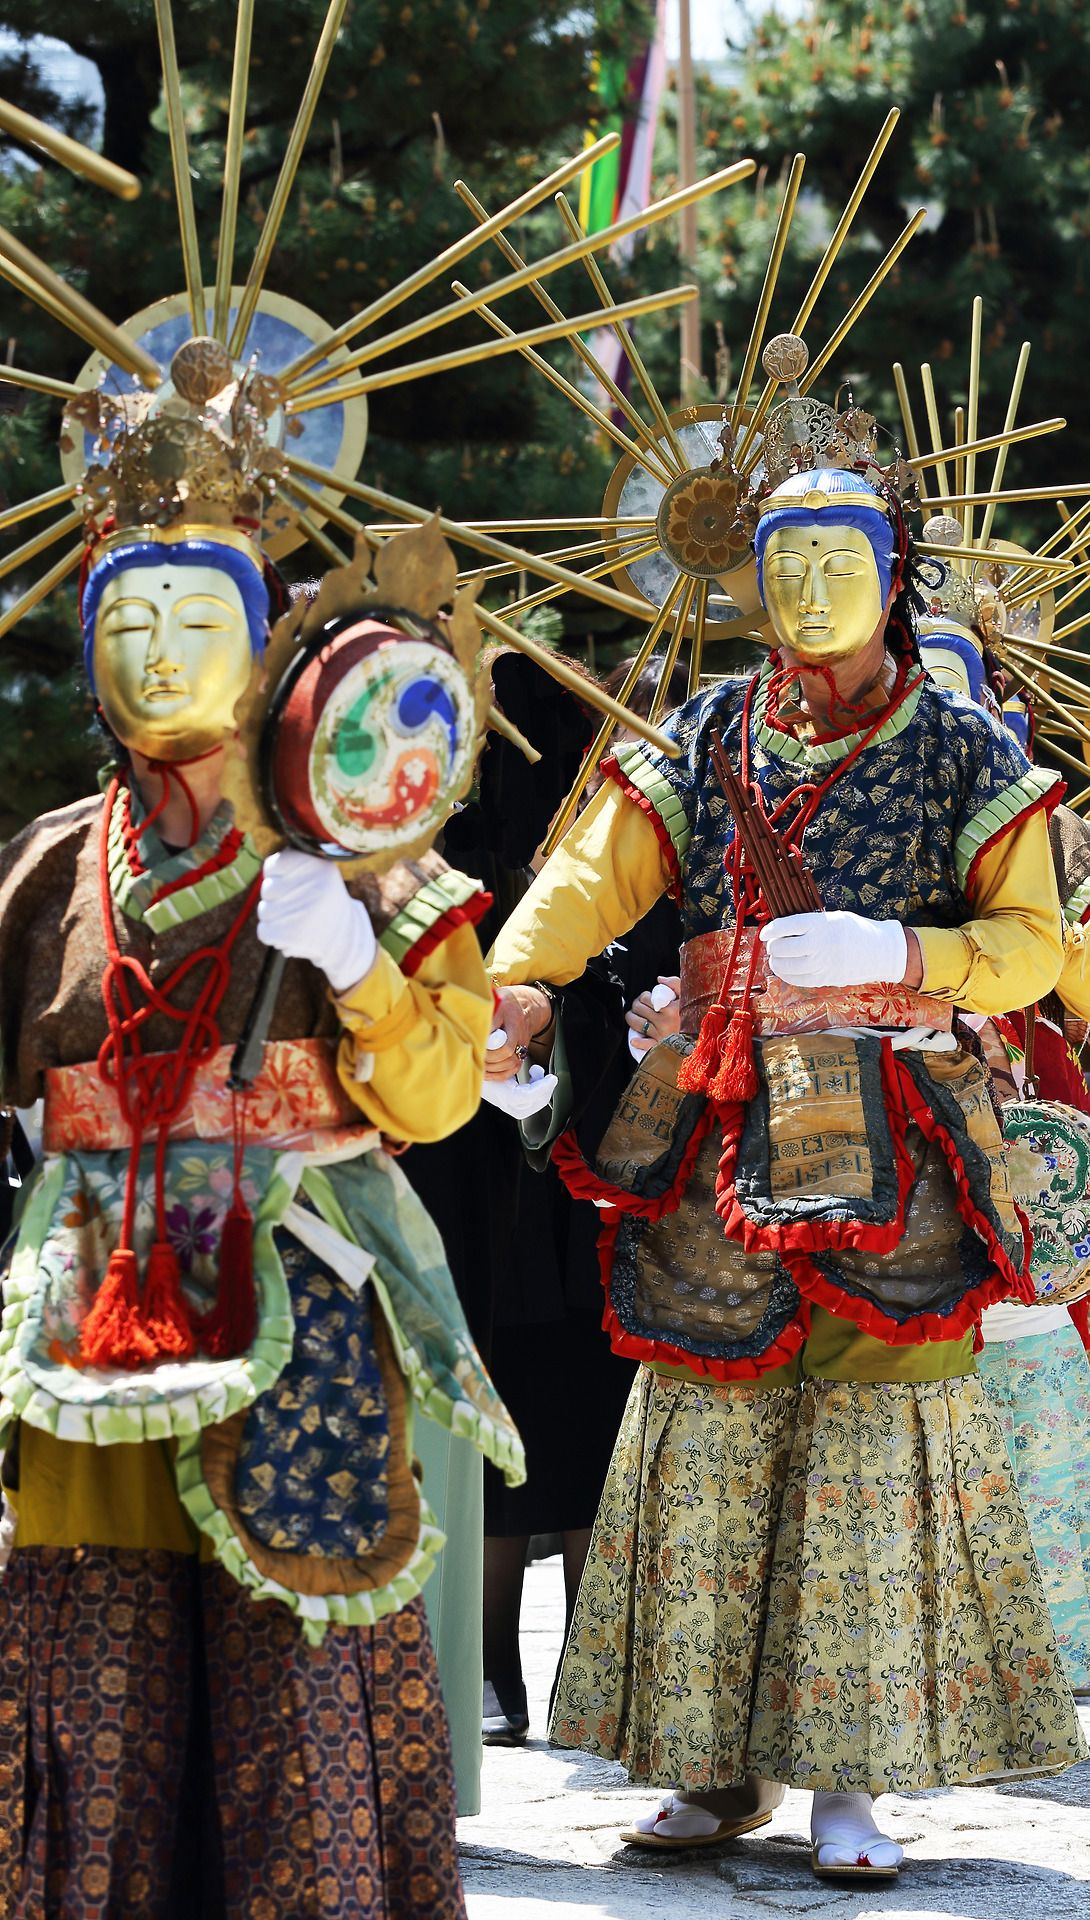 Festival at Hyaku-manbenChionjiTemple, Kyoto. Apr 25, 2013.  Photography by Teruhide Tomori of Flickr